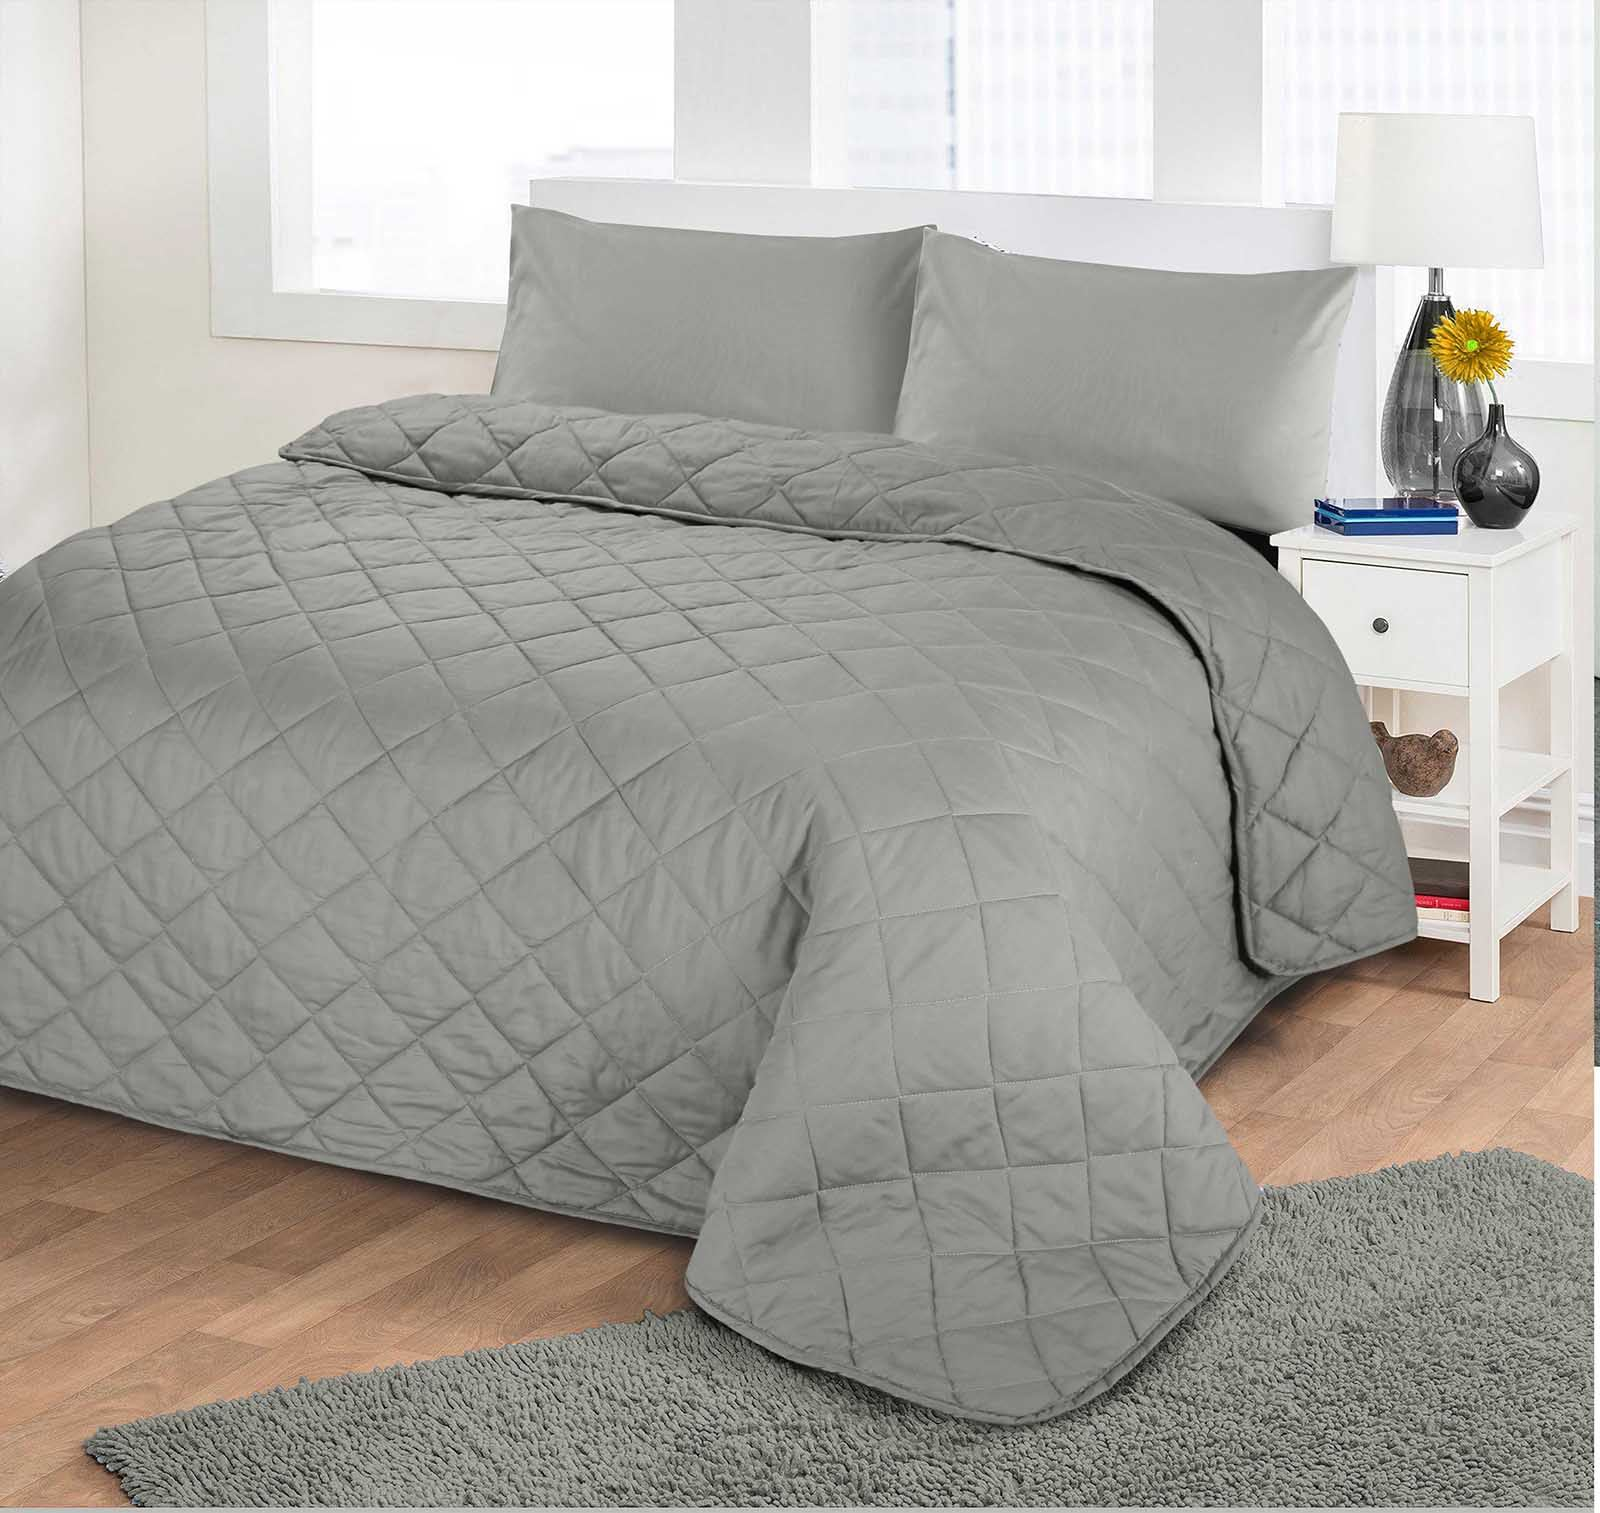 Quilted bedspread on the bed: especially the choice and tailoring do-it-yourself 74